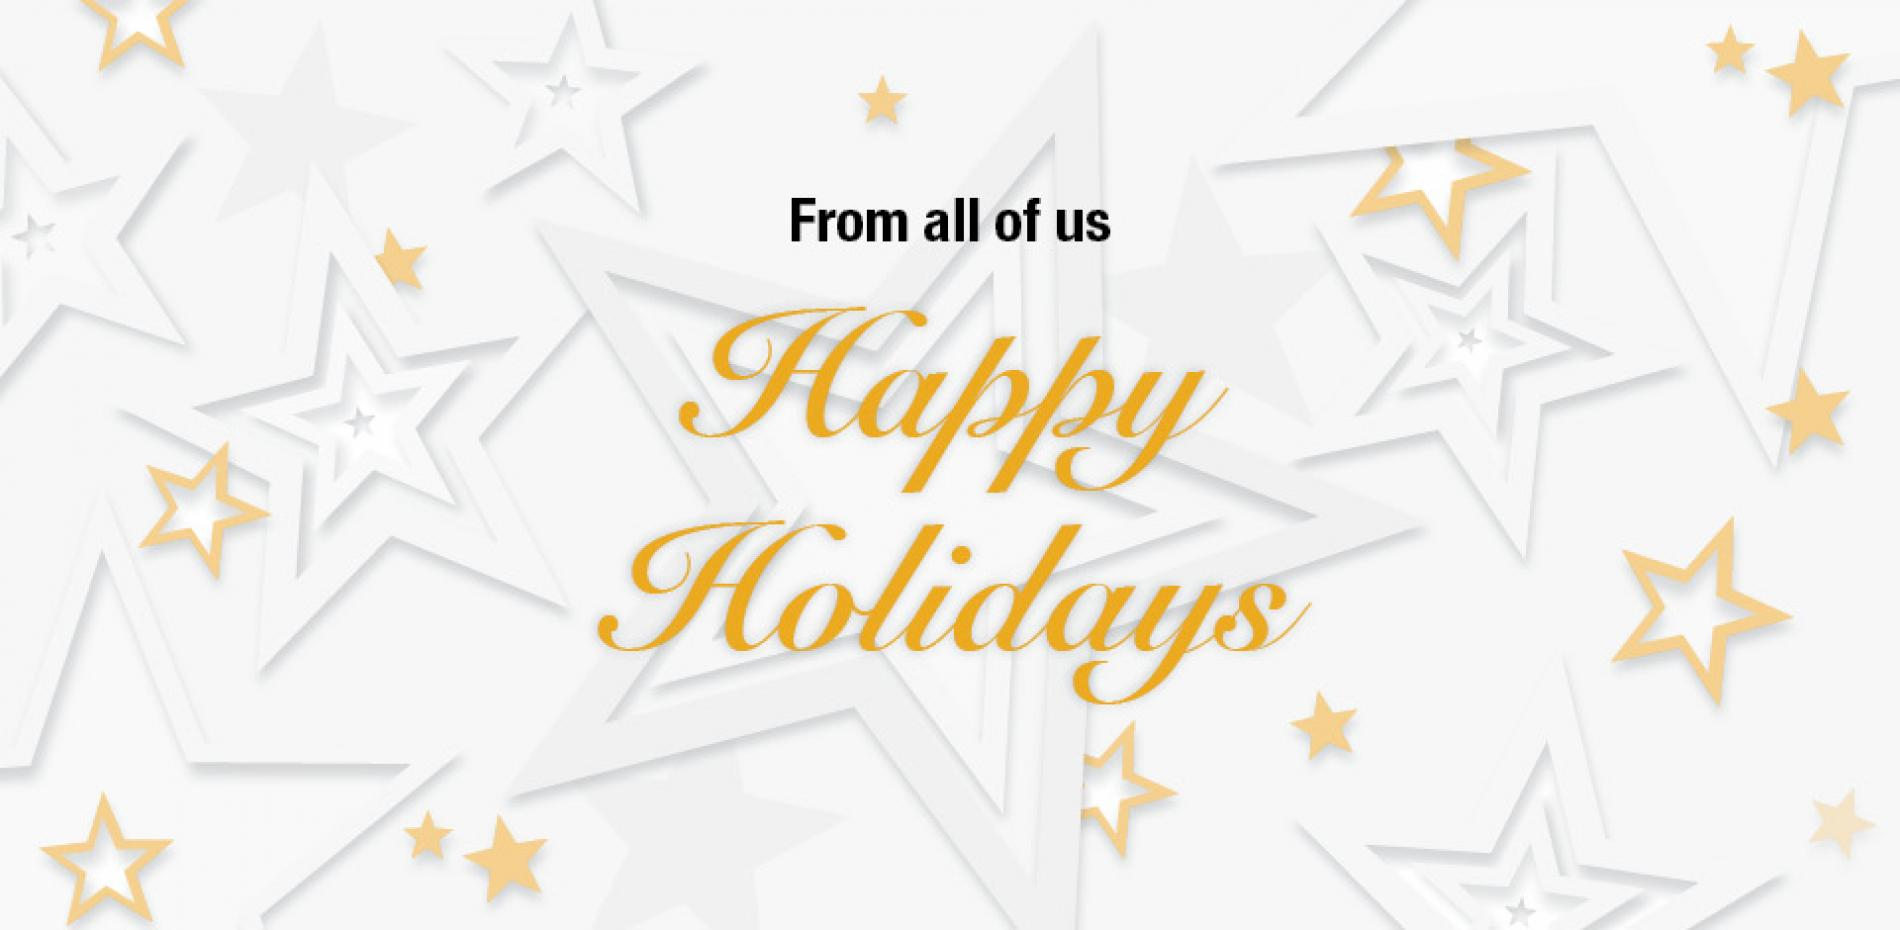 From All of Us, Happy Holidays